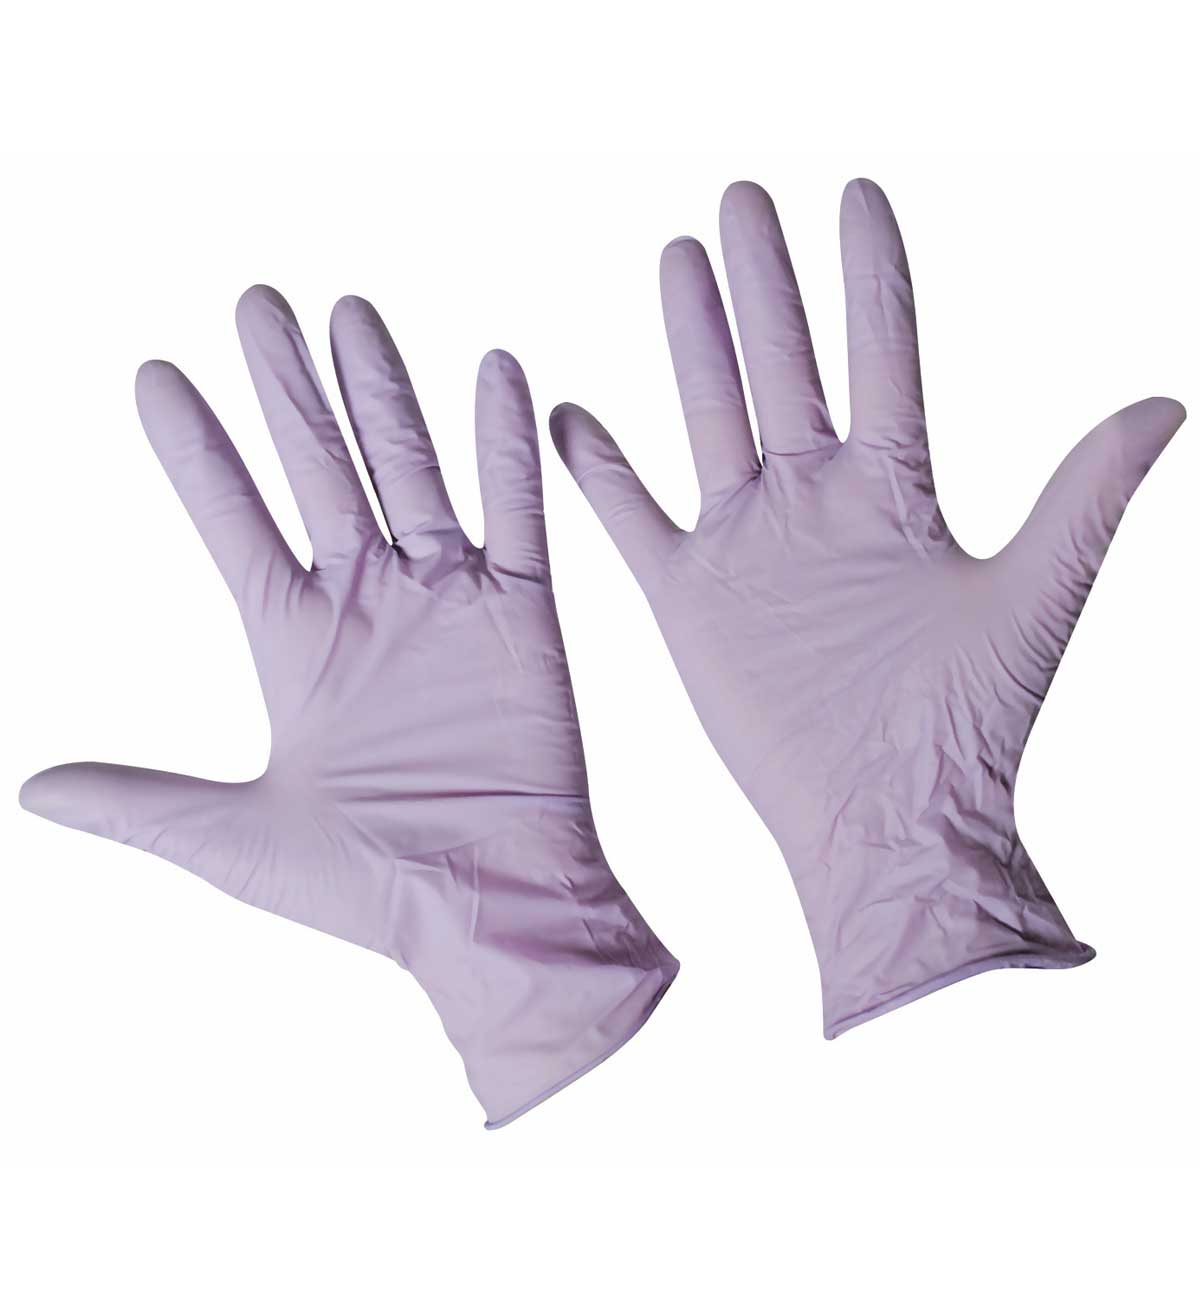 Large Sterile Nitrile Powder-Free Latex-free Gloves